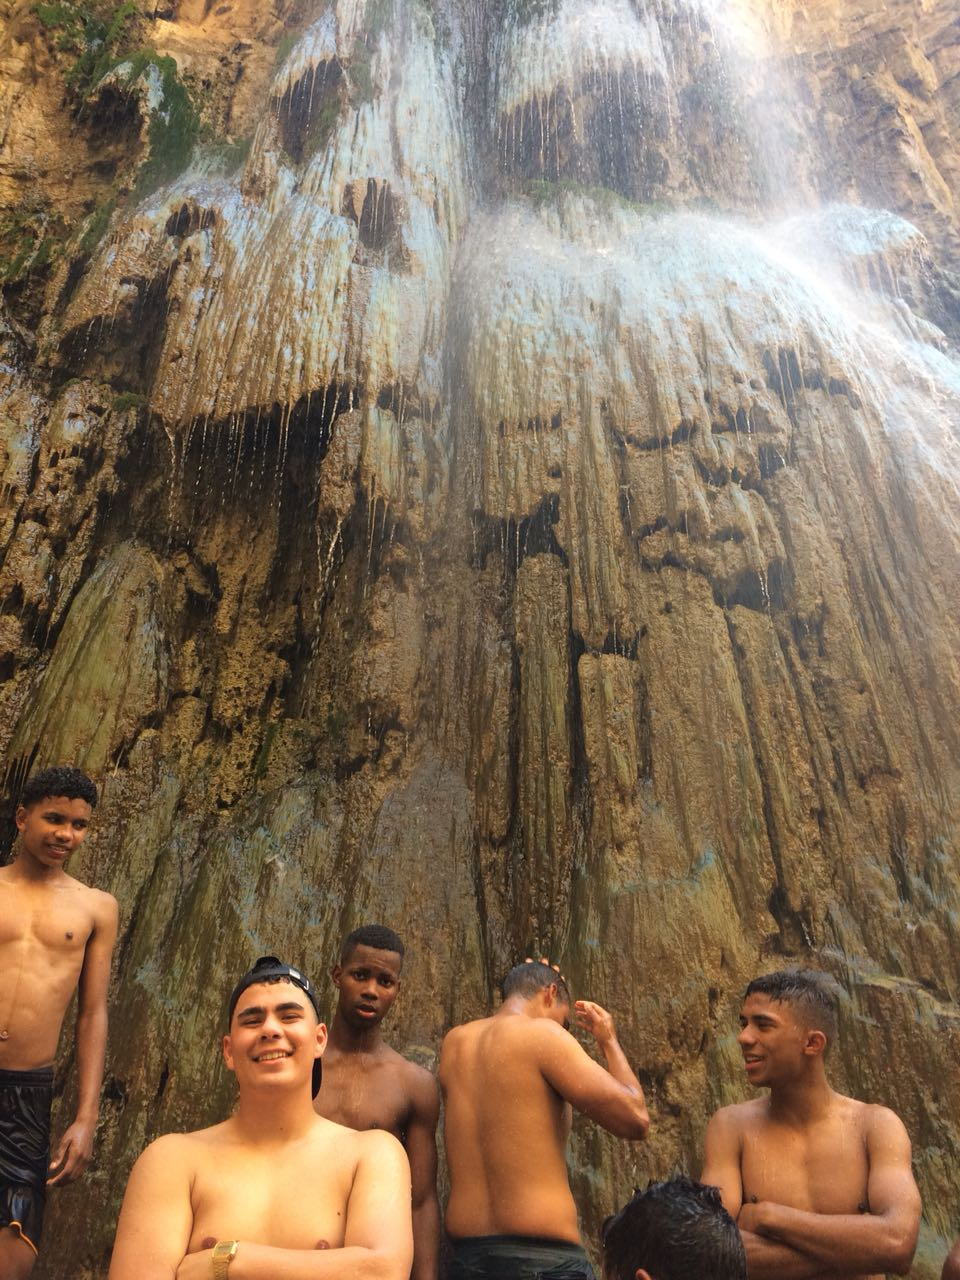 Treasure - After the Dead Sea, our boys found this waterfall in the middle of the desert.